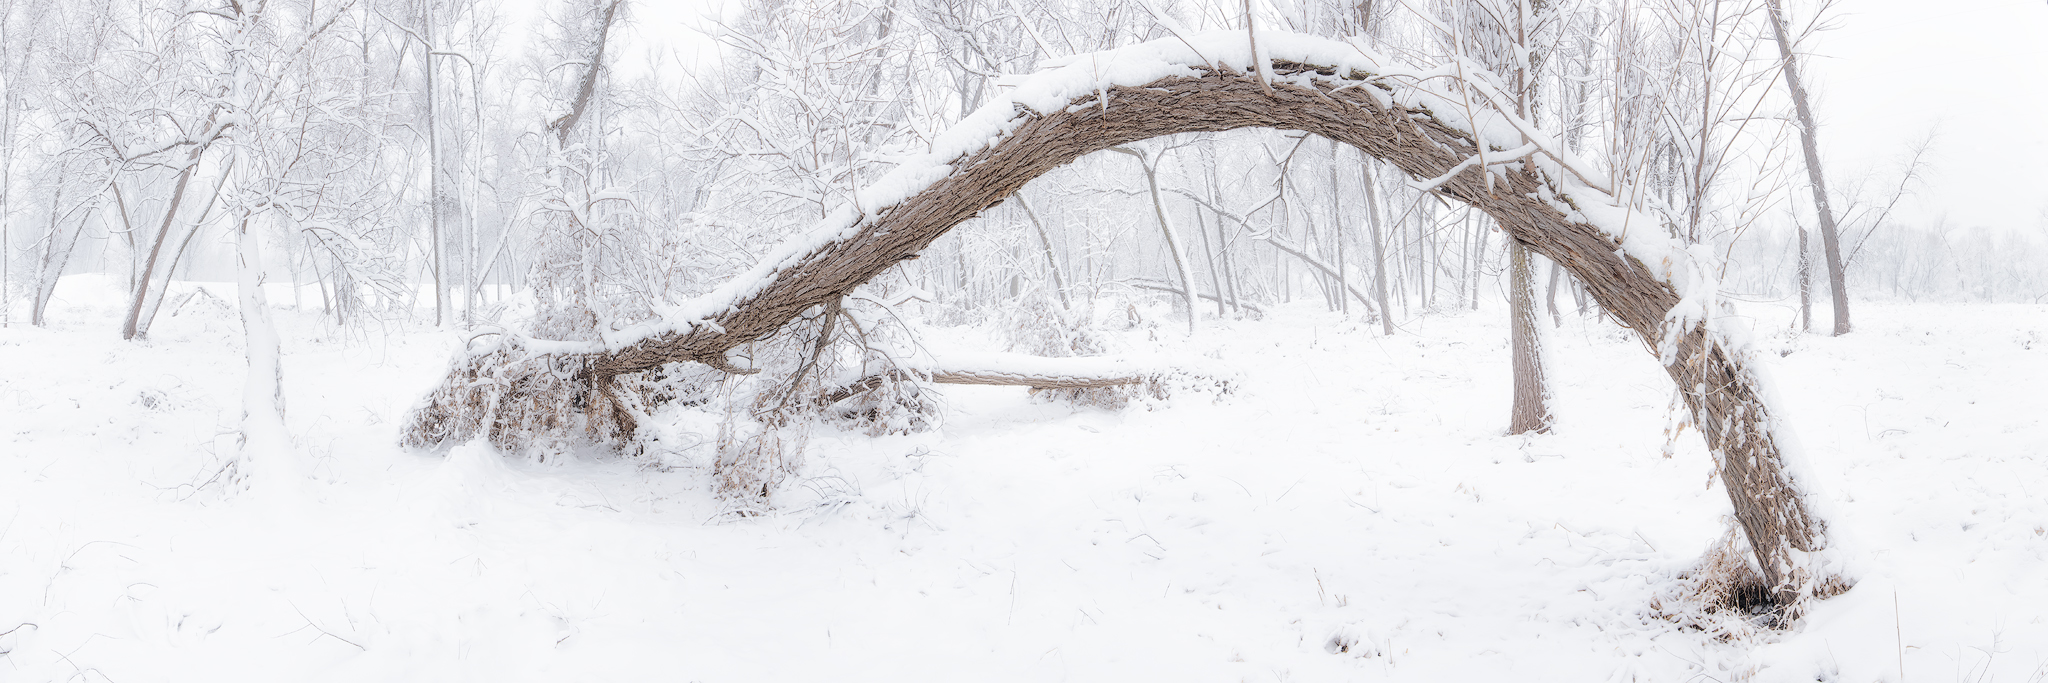 A interesting tree arch in Lake Manawa State Park - 6 frame pano - 24mm - ISO 100 - f/16 - 1/6 sec